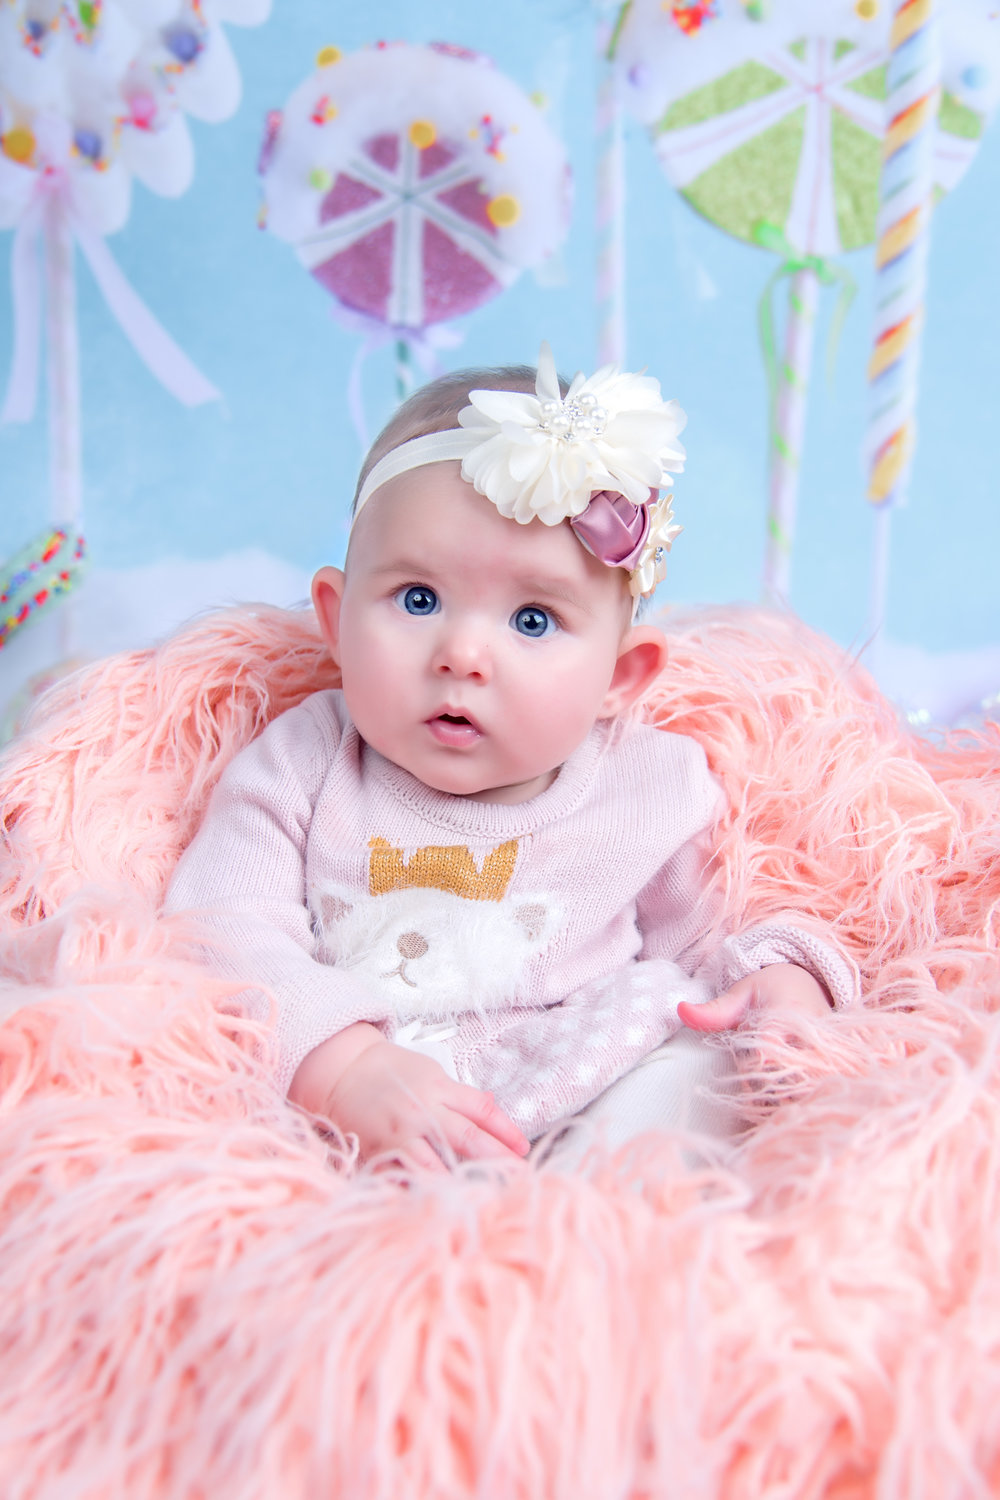 Baby girl in pink at Candy Land holiday Christmas portrait session